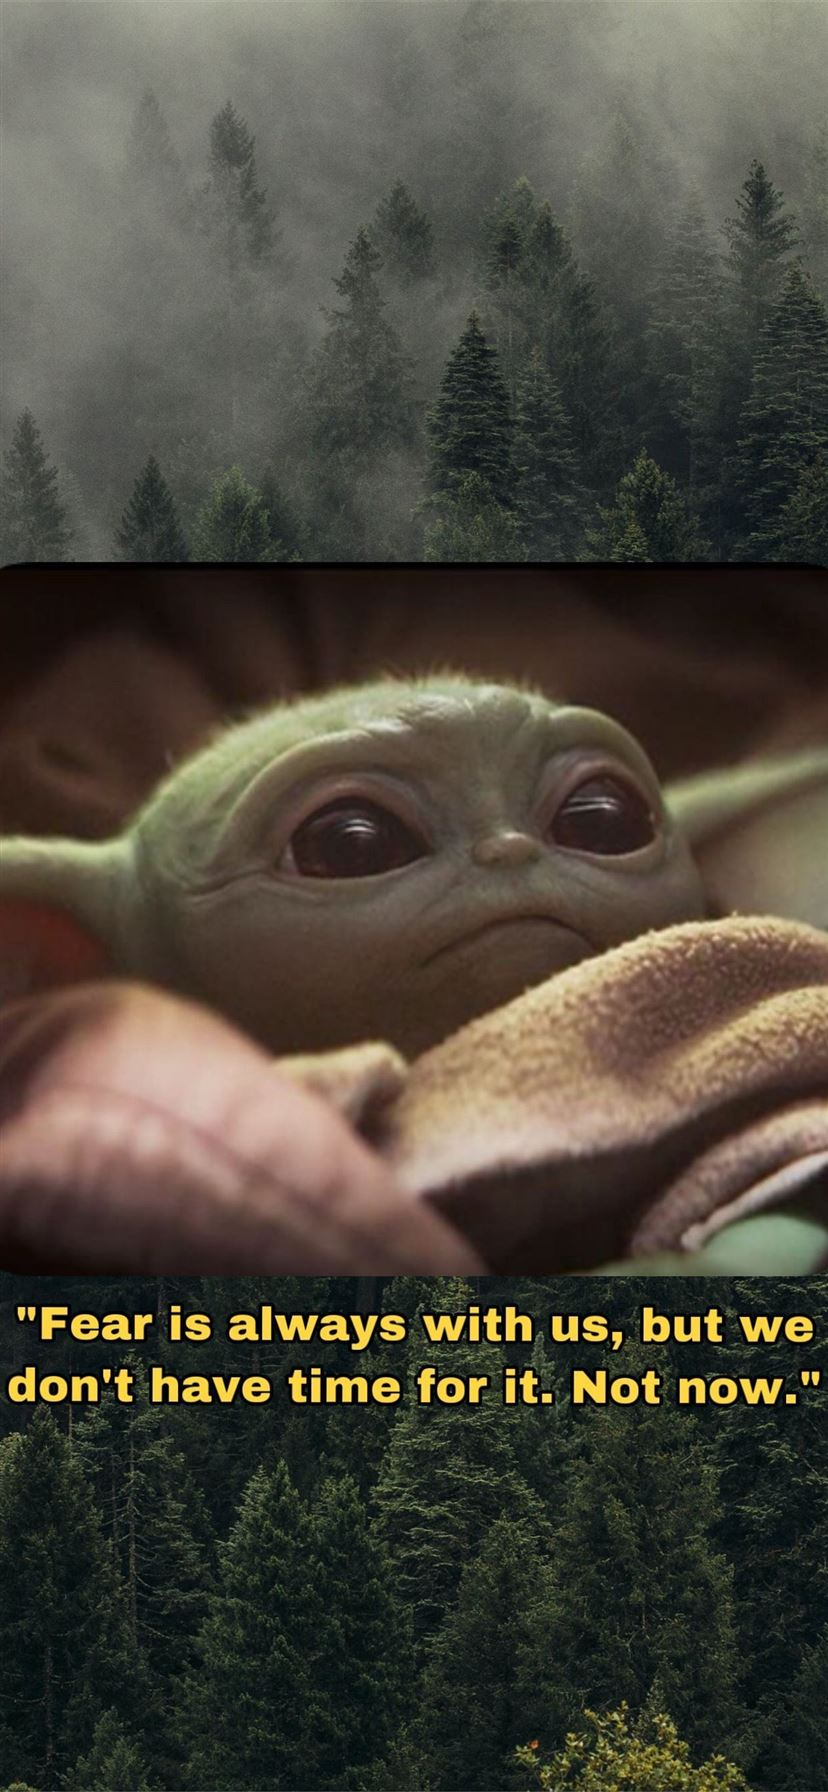 Best Baby Yoda Iphone 11 Wallpapers Hd 2020 Ilikewallpaper